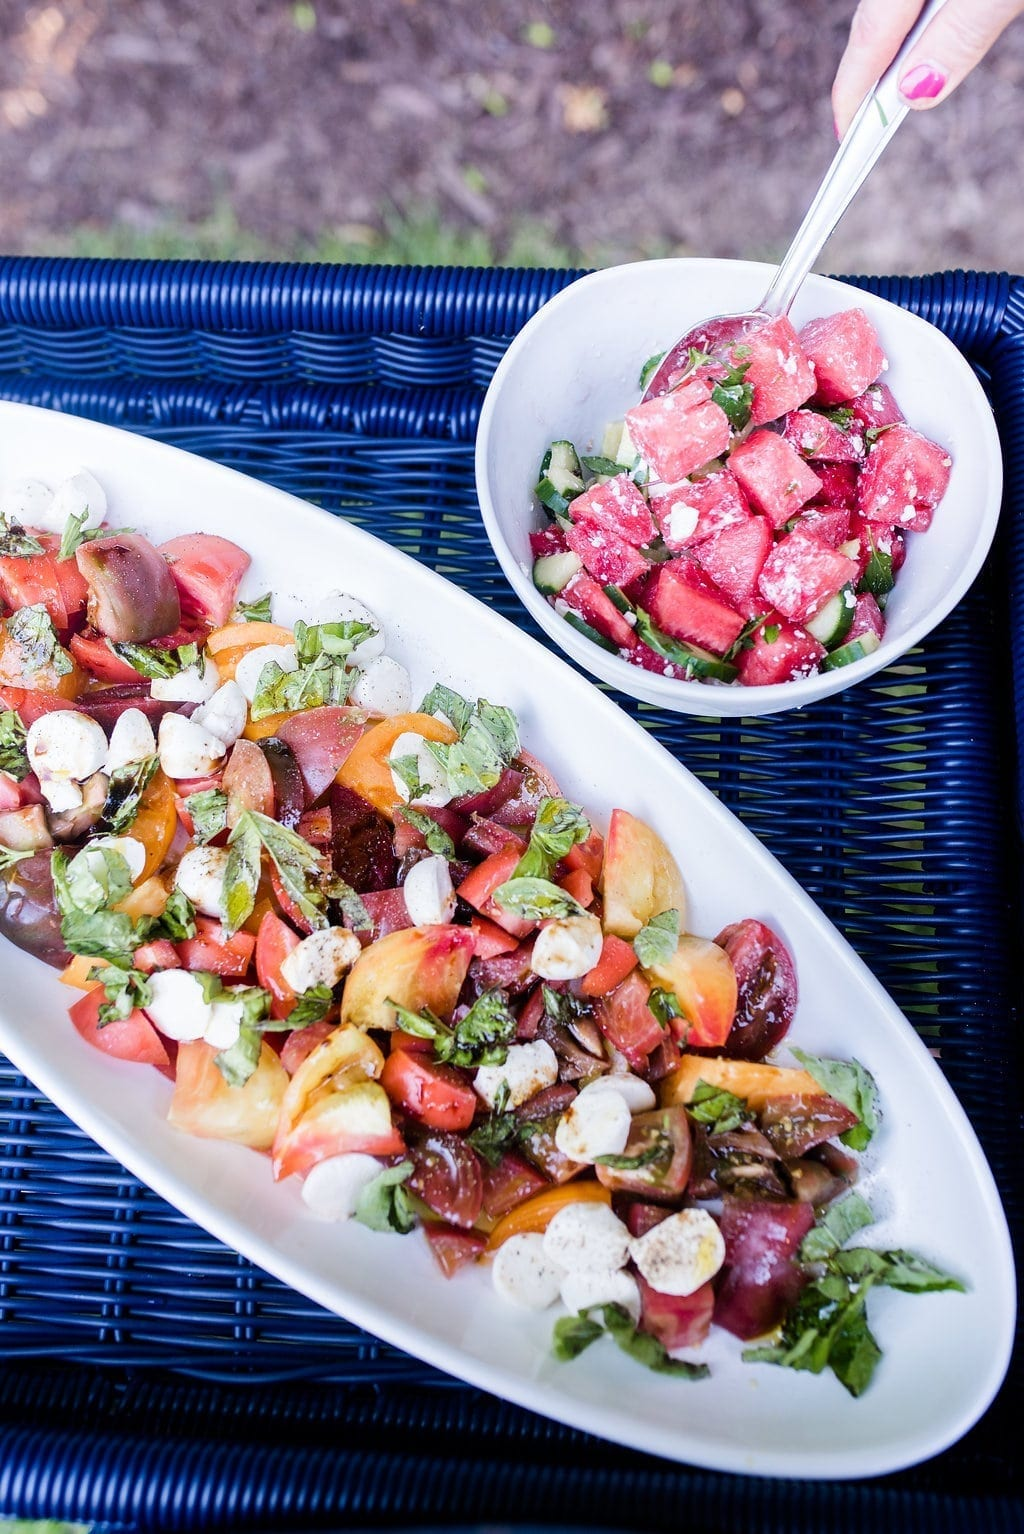 Watermelon and feta side dish. Cold side dish for outdoor entertaining.